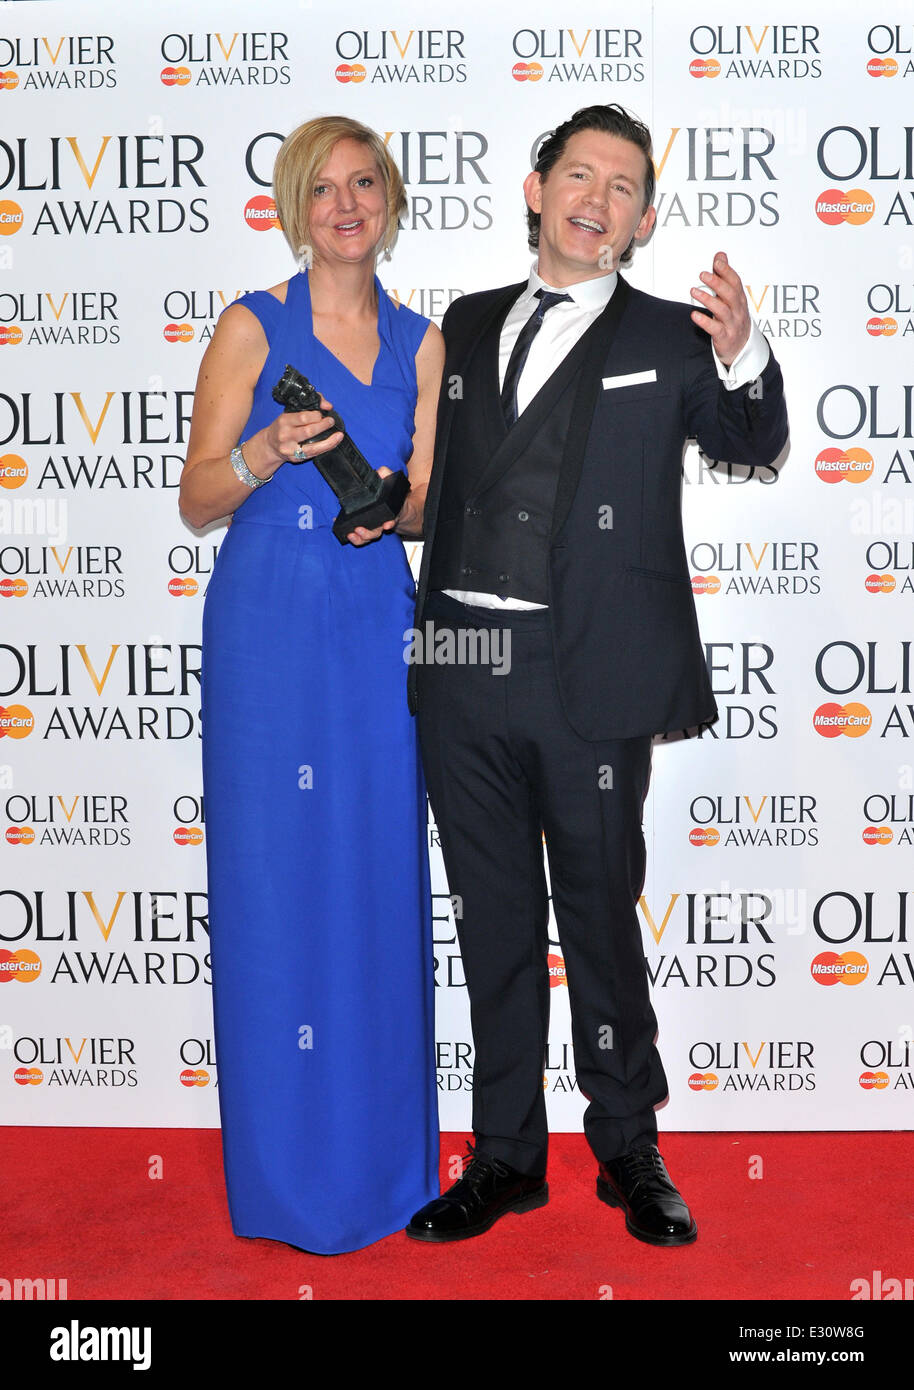 The Olivier Awards held at the Royal Opera House - Pressroom  Featuring: Marianne Elliott,Lee Evans Where: London, - Stock Image